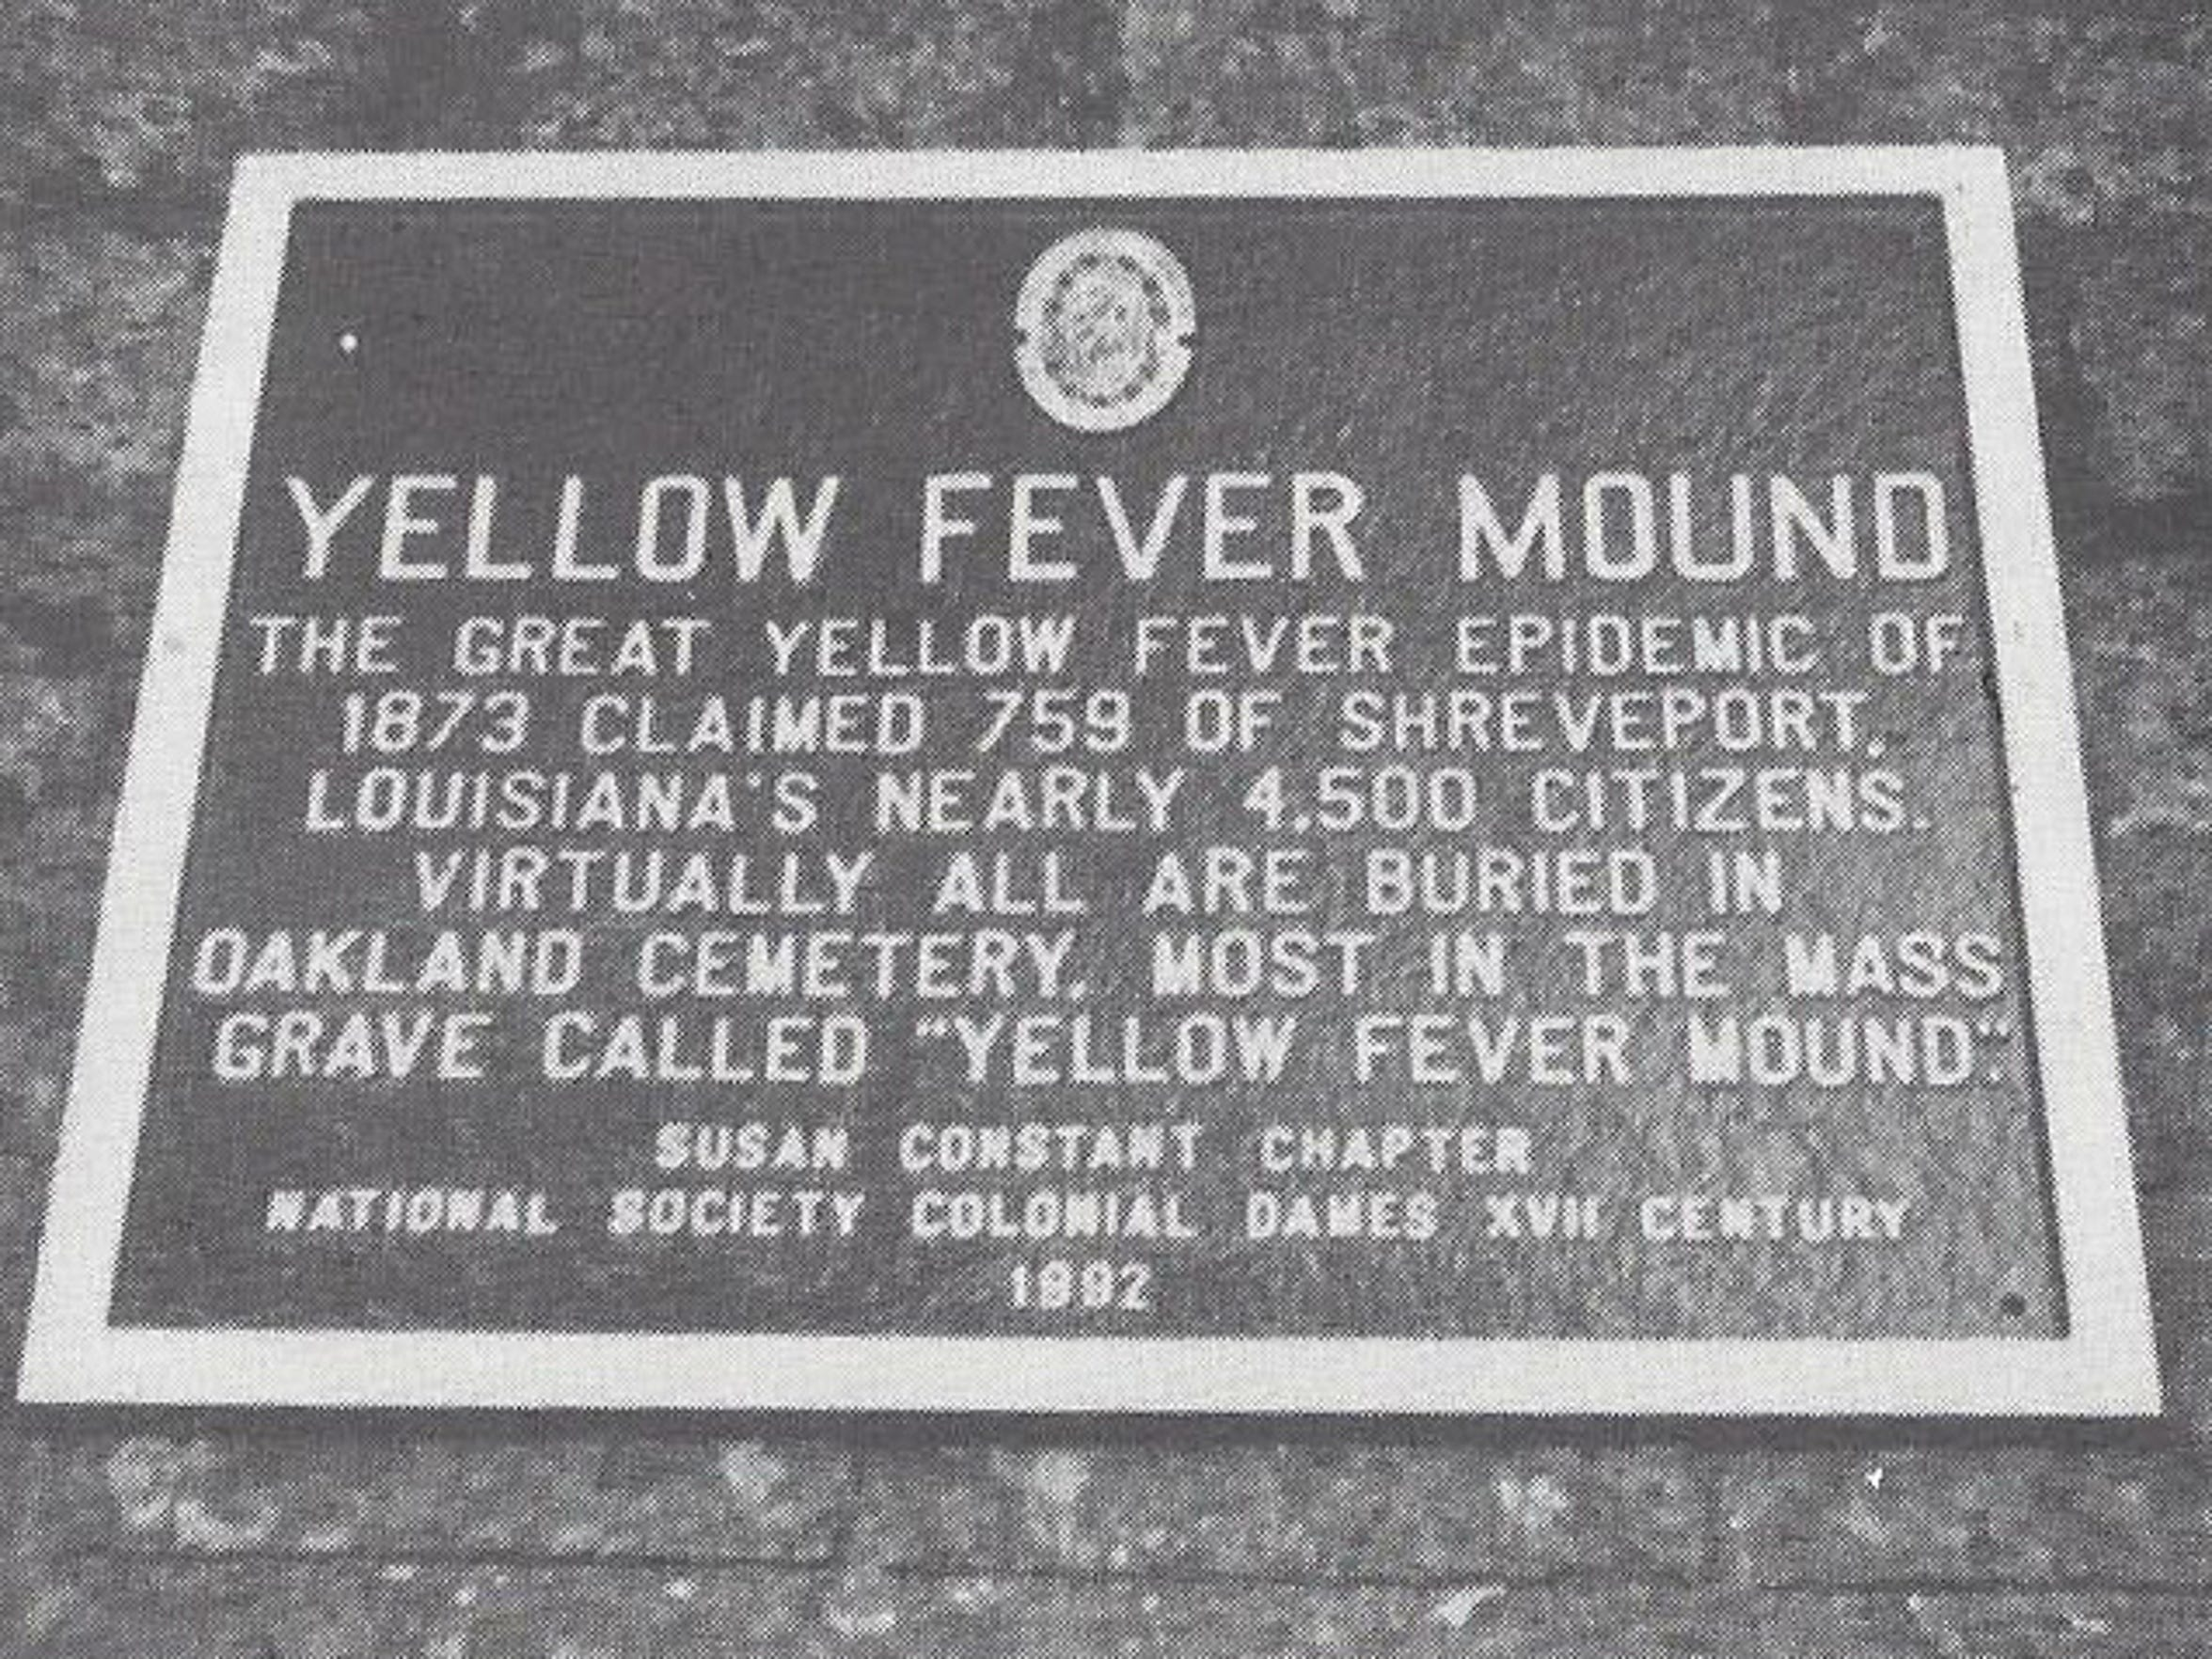 A place memorizing the Great Yellow Fever Epidemic of 1873.